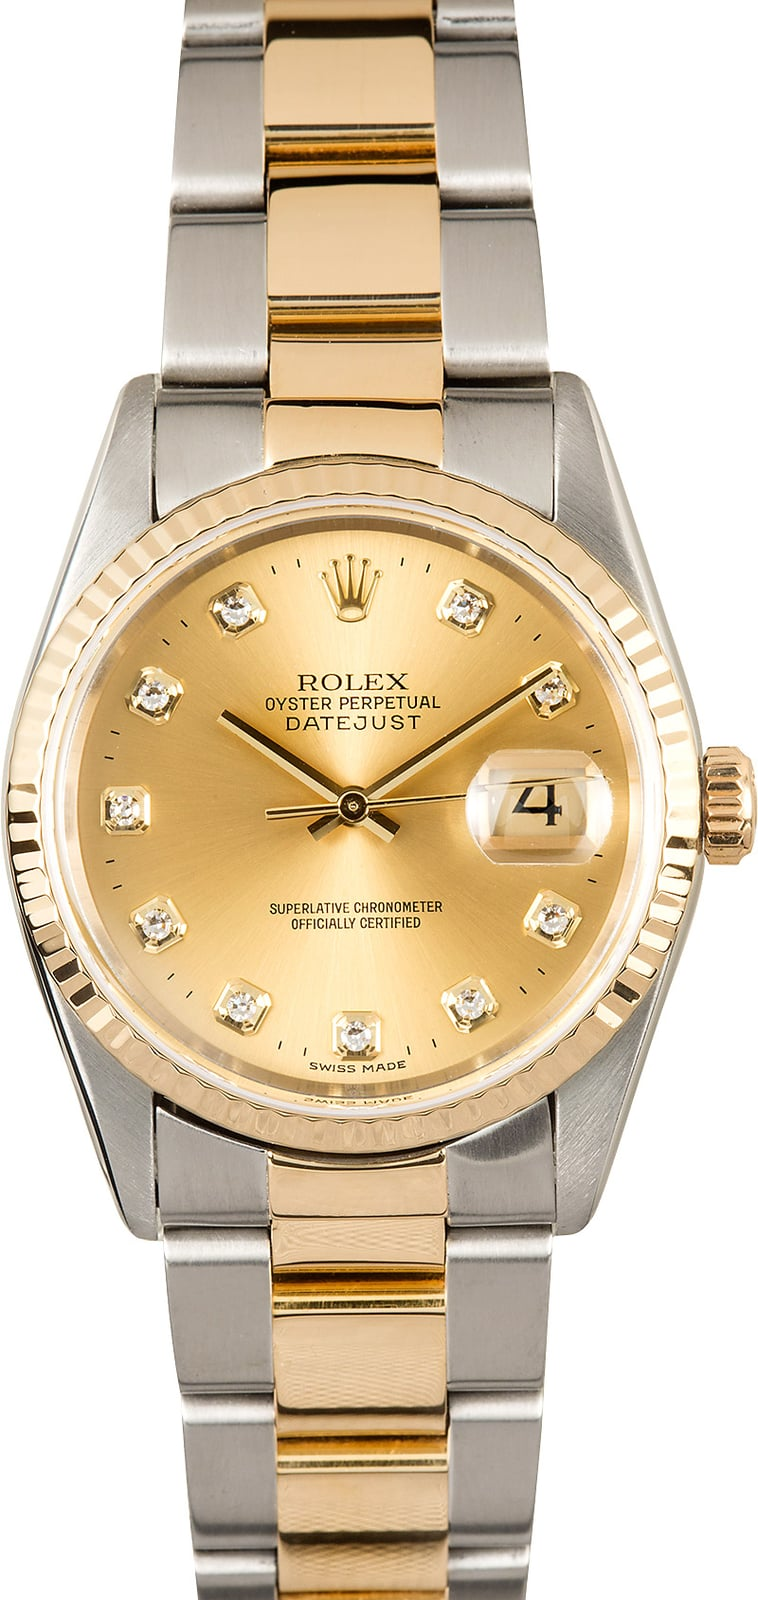 Rolex Oyster Perpetual Datejust Diamond Numbers